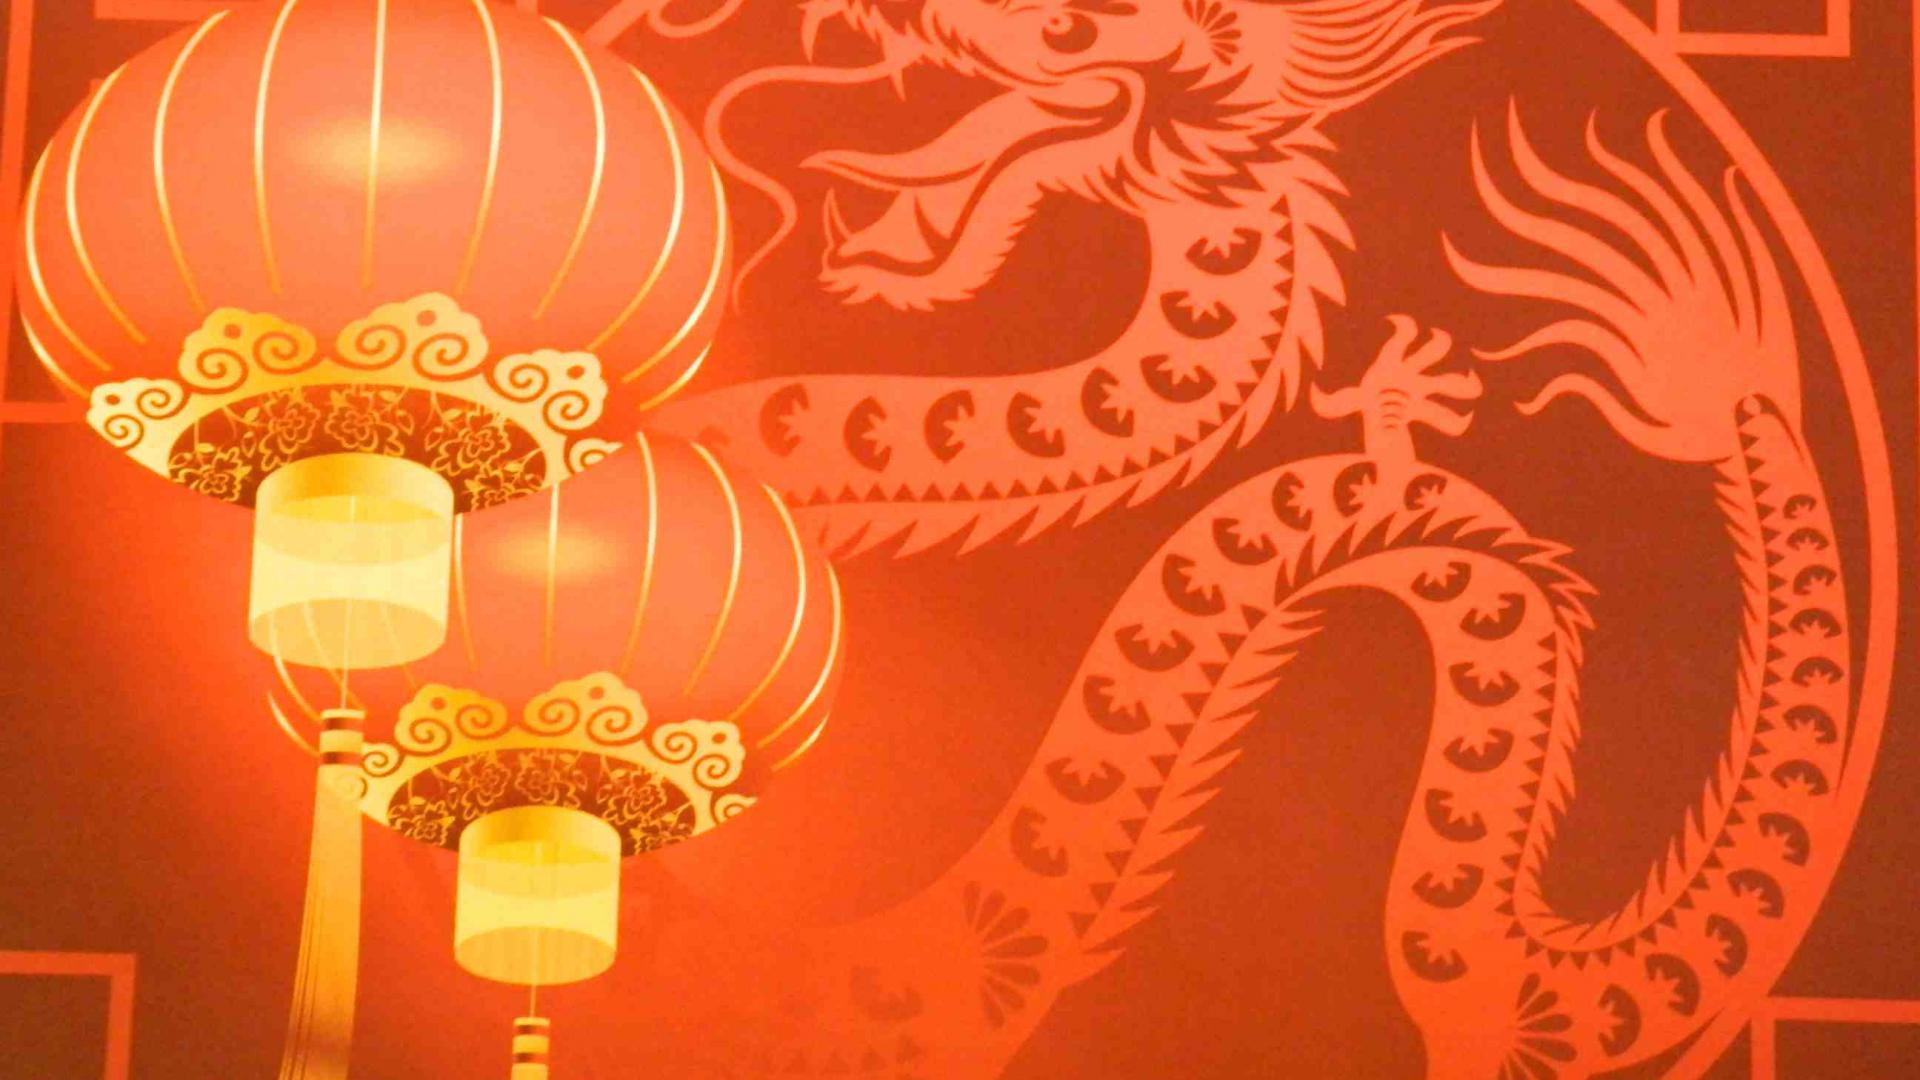 Free Download Lunar New Year 2016 Wallpapers Best Wallpapers